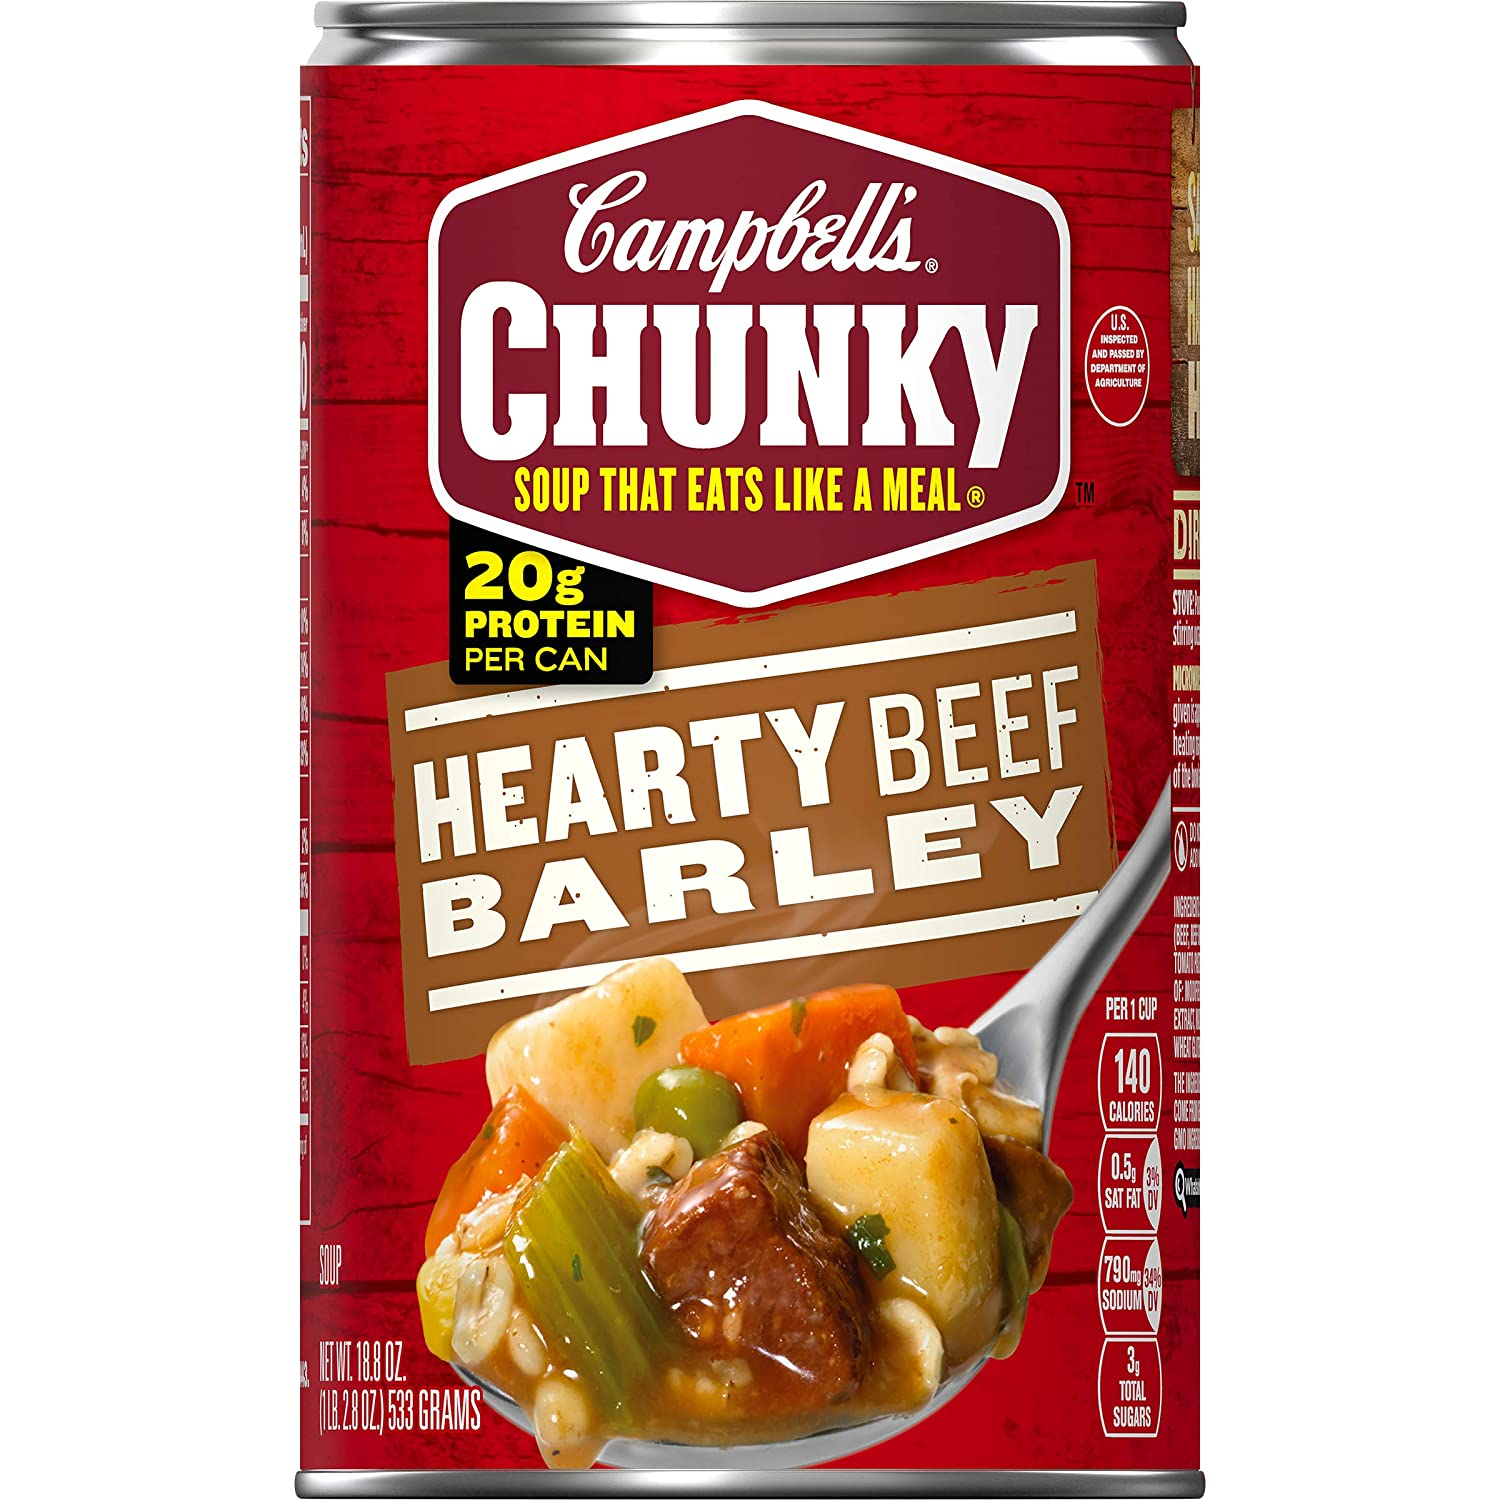 Campbell's Chunky Hearty Beef Barley Soup, 18.8 oz. Can